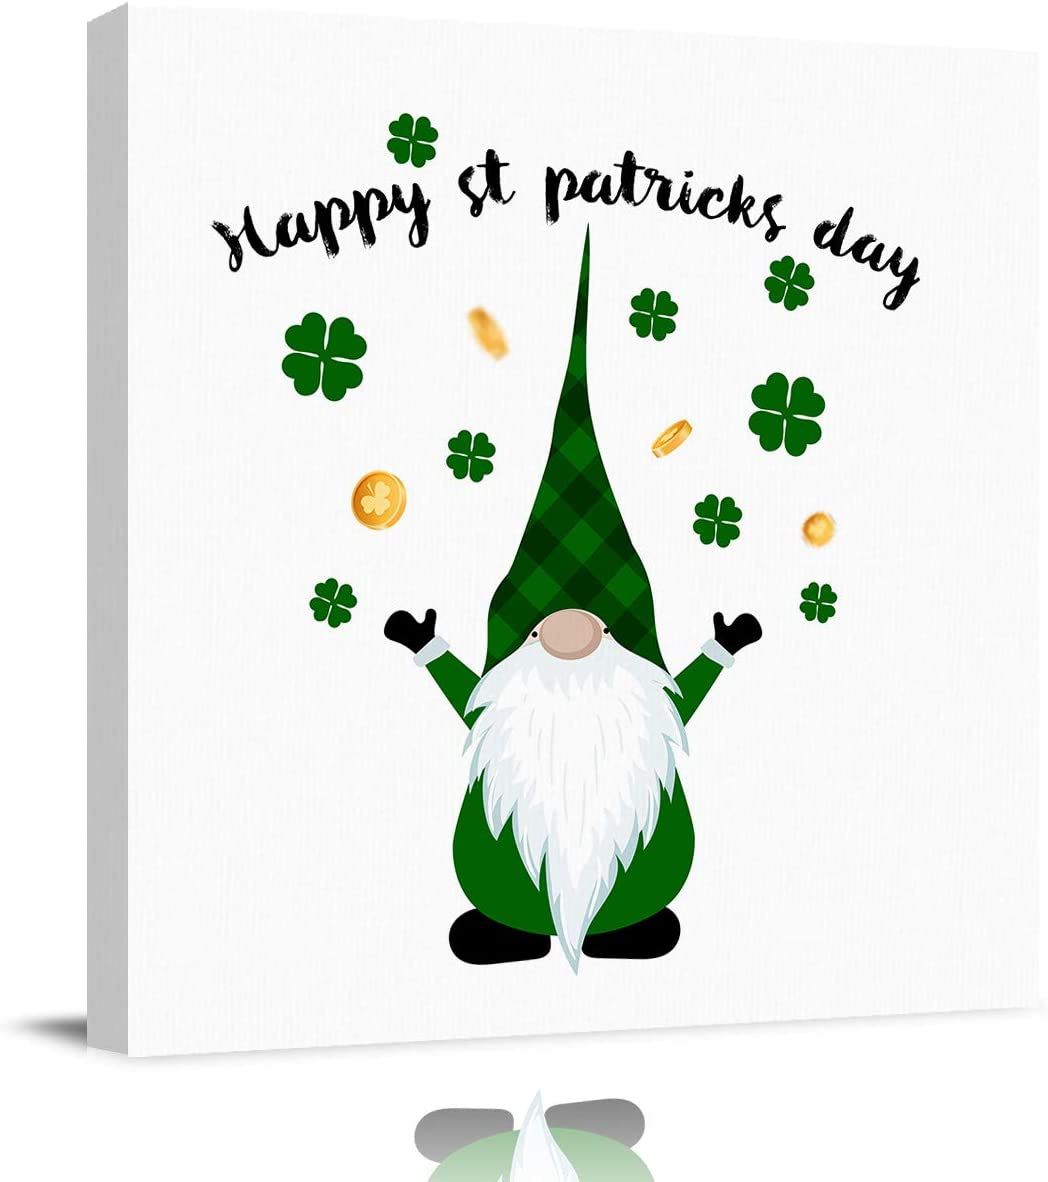 Amazon Com Canvas Print Wall Art Painting Decor 28 X 28 Green Gnomes Irish Decor Lucky Shamrock And Coins Modern Home Decorations Giclee Artwork Hd Picture Strenched And Framed Artwork Posters Prints